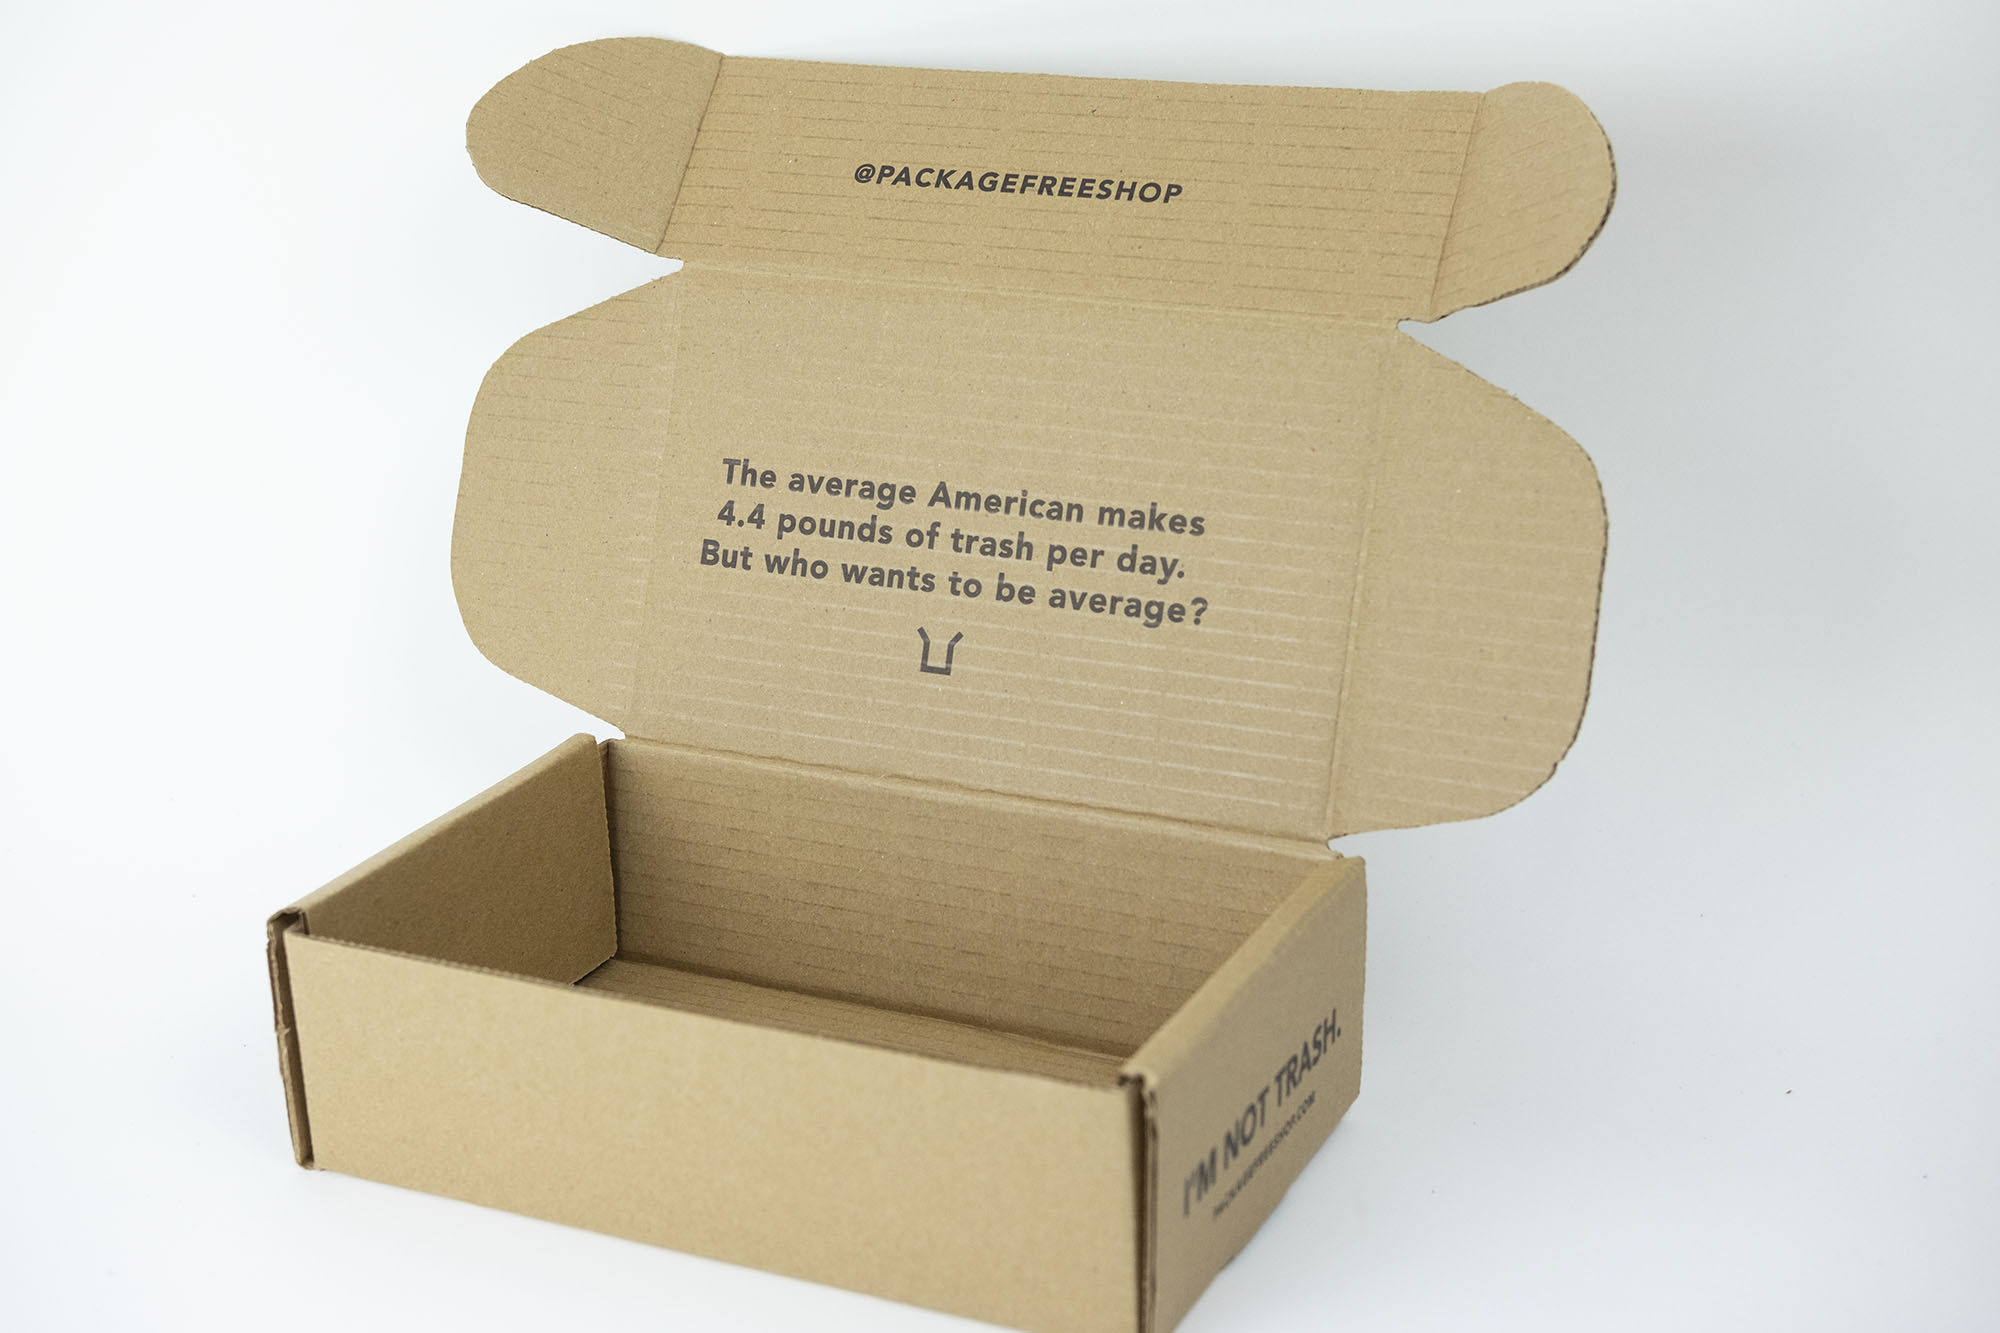 Sustainable Packaging Design for  Package Free Shop